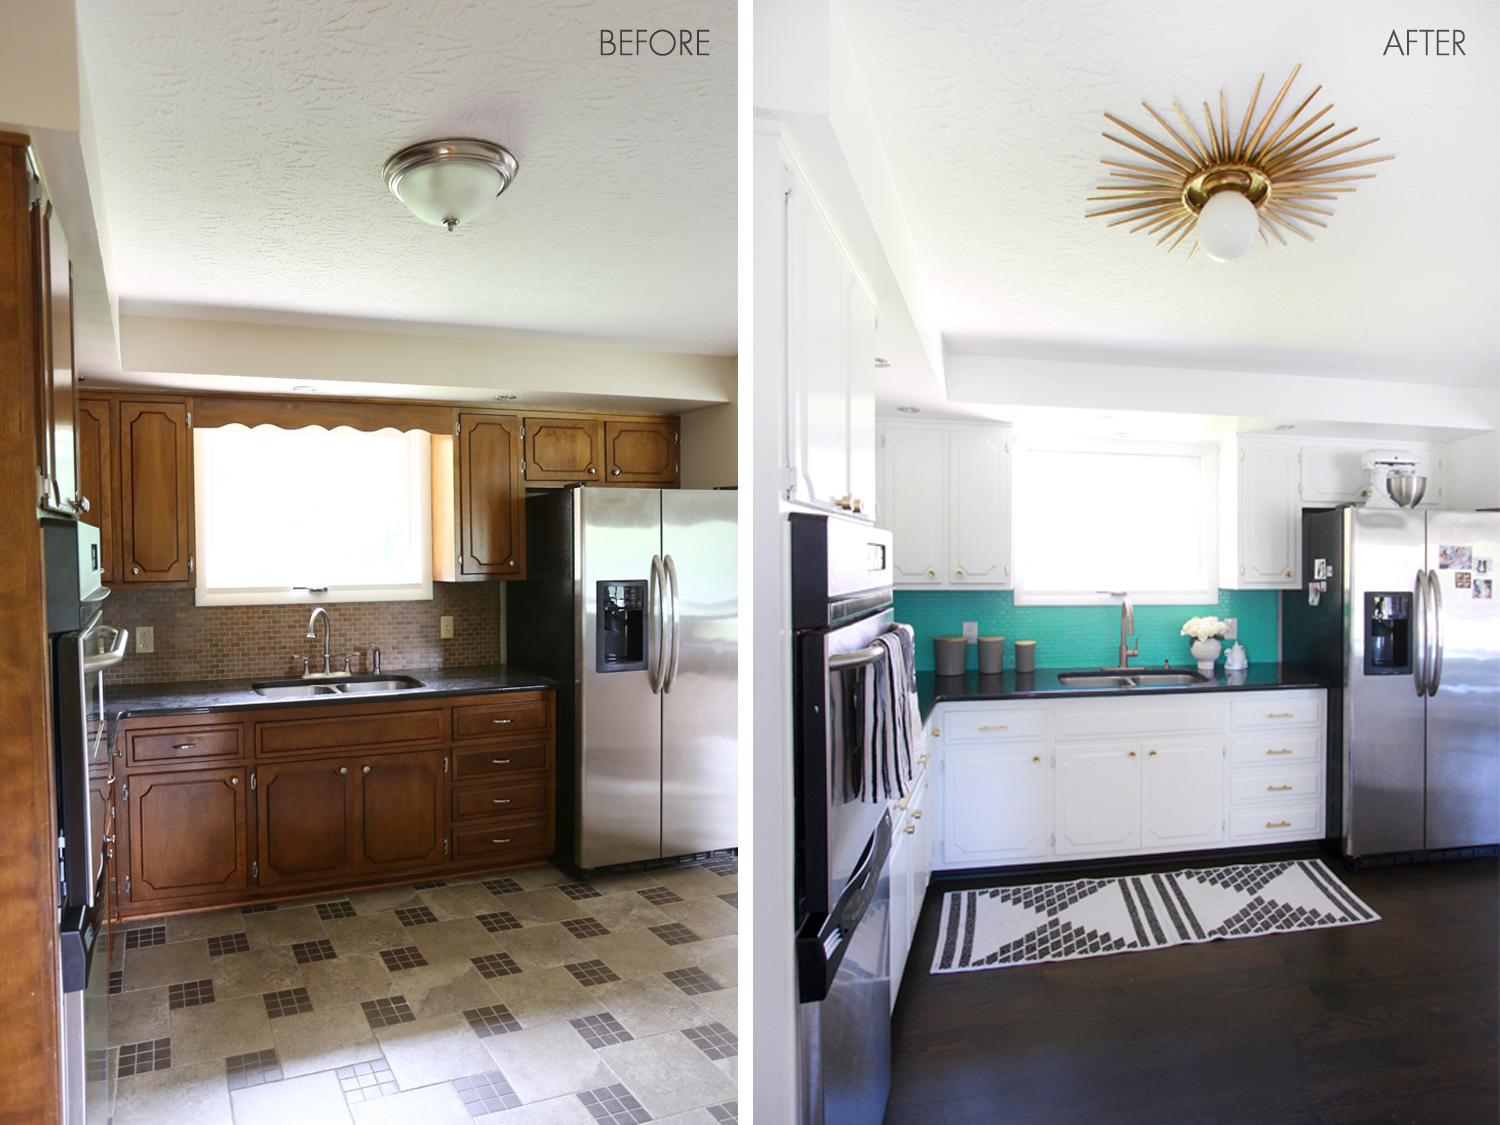 Laura's kitchen before and after (click through to see more!)